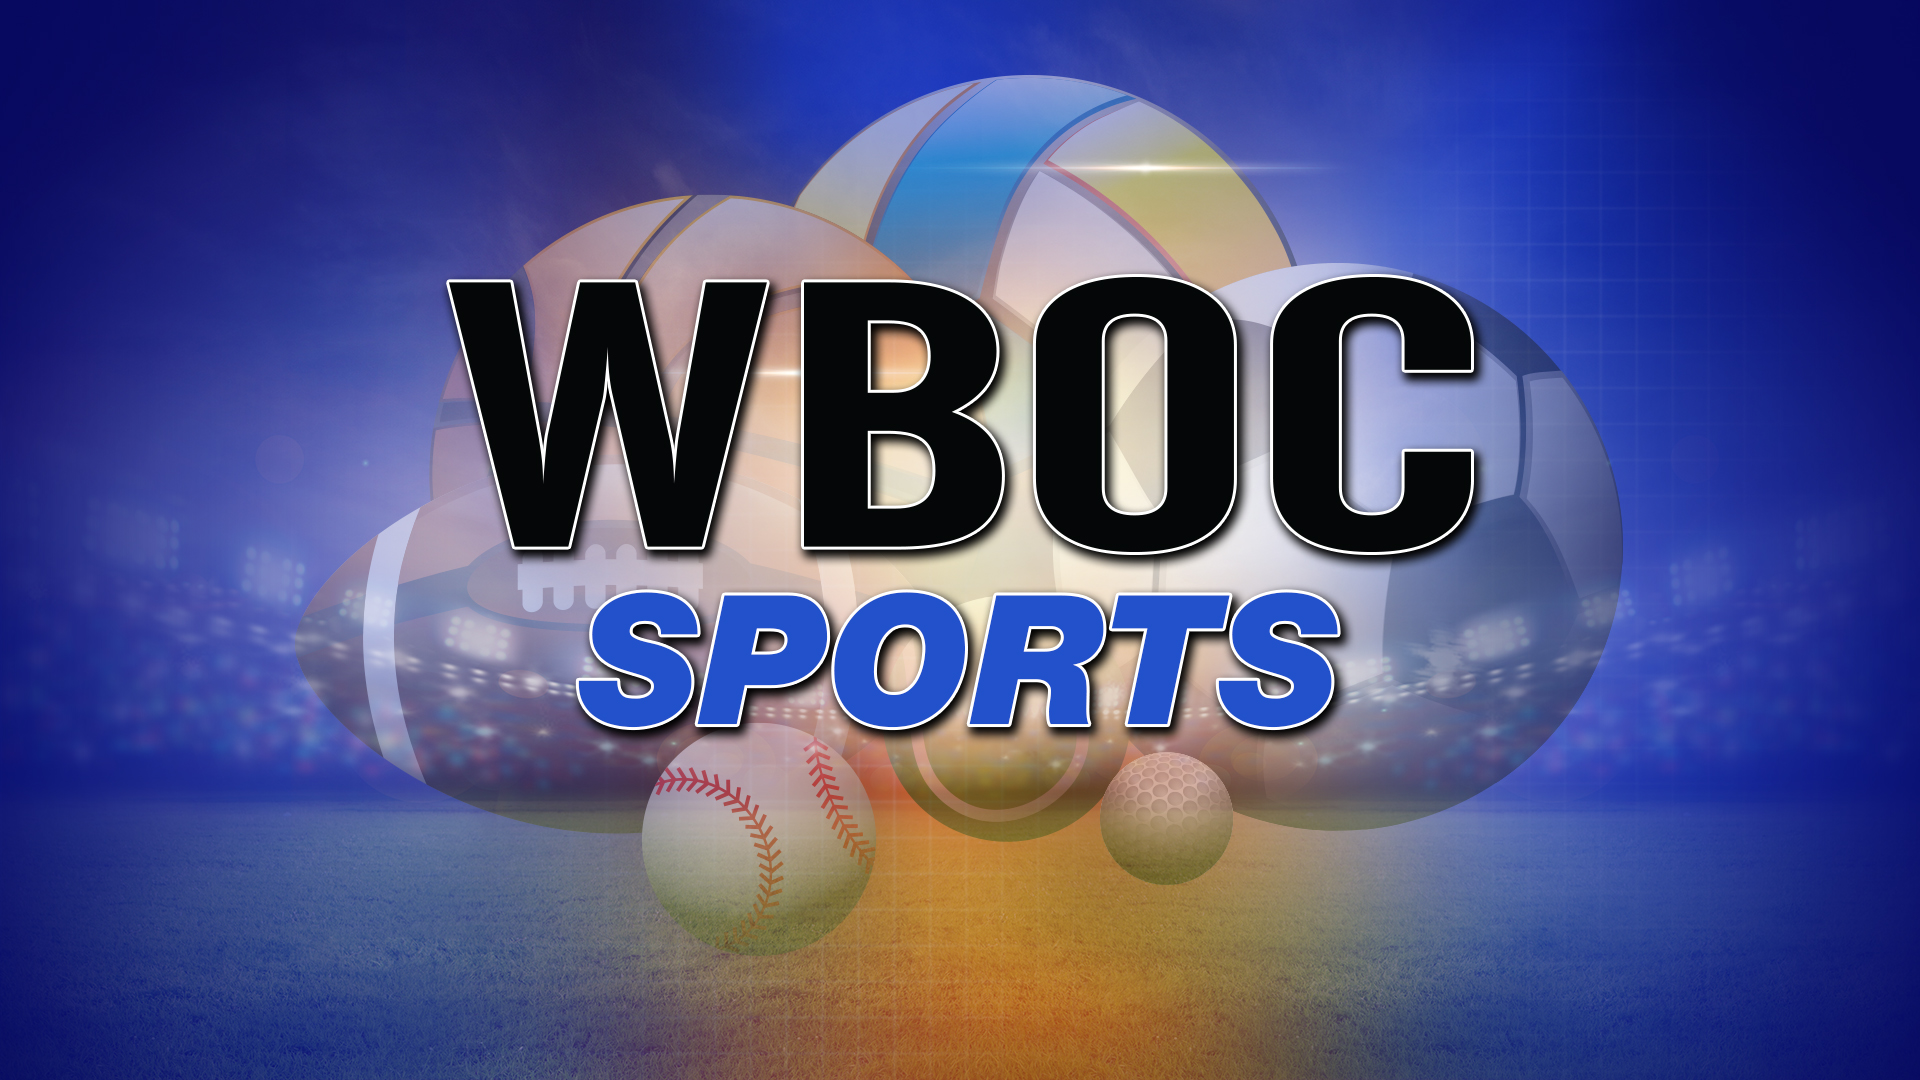 WBOC Sports Report: Wednesday, November 4, 2015